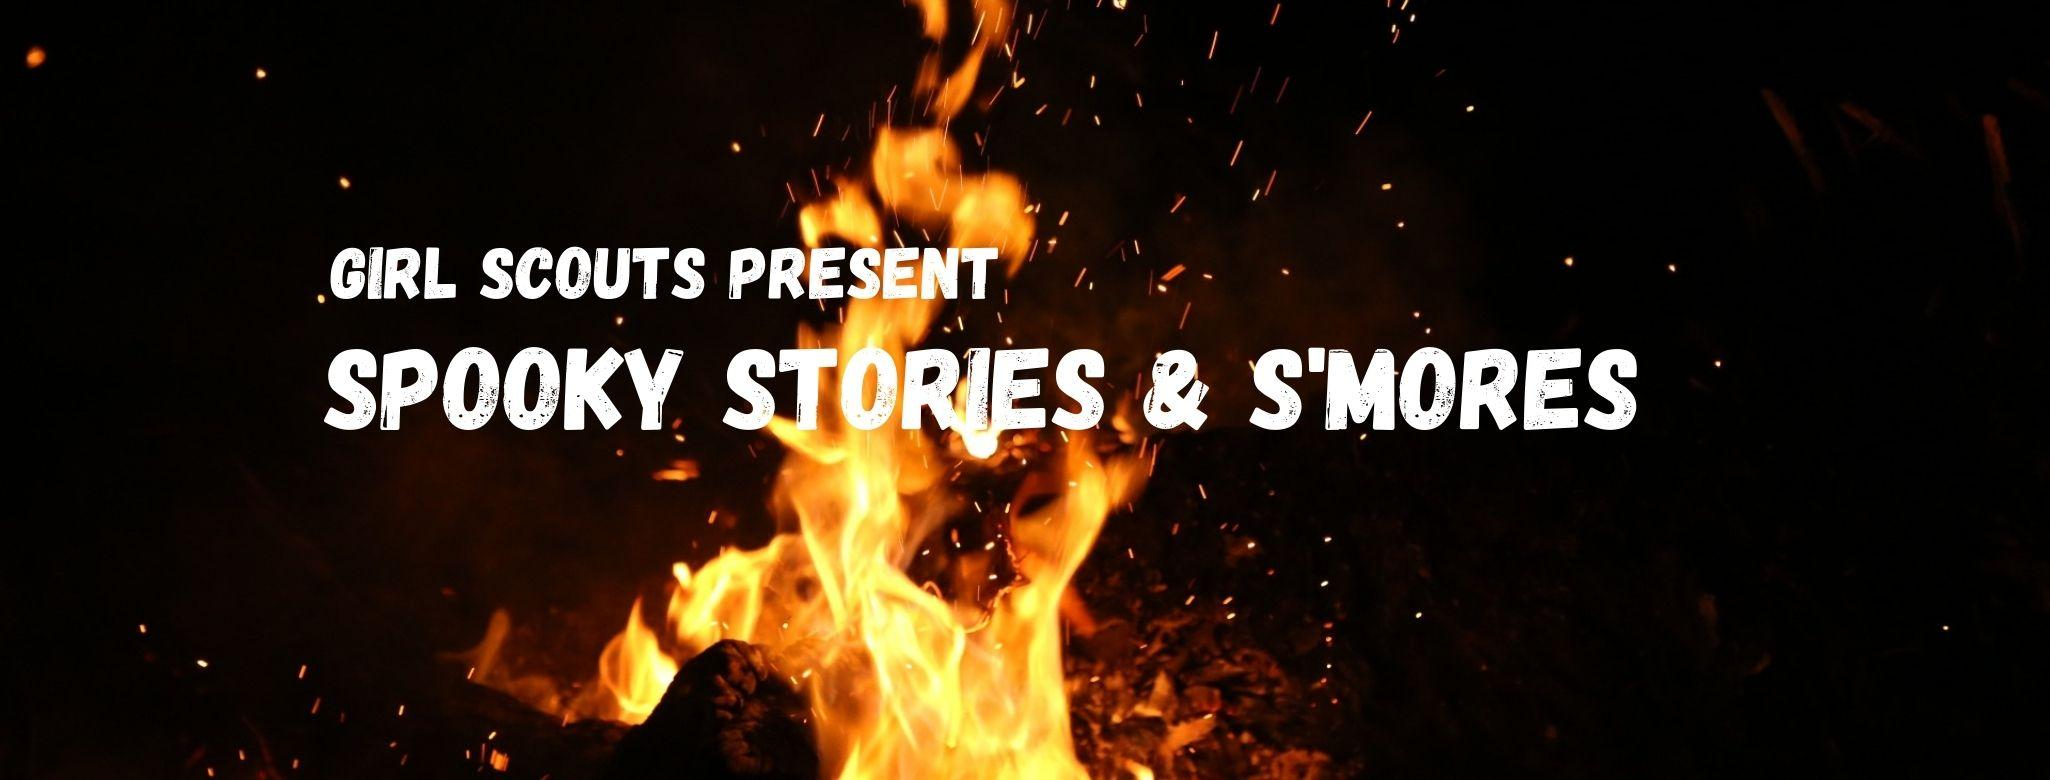 Spooky Stories & S'mores 1